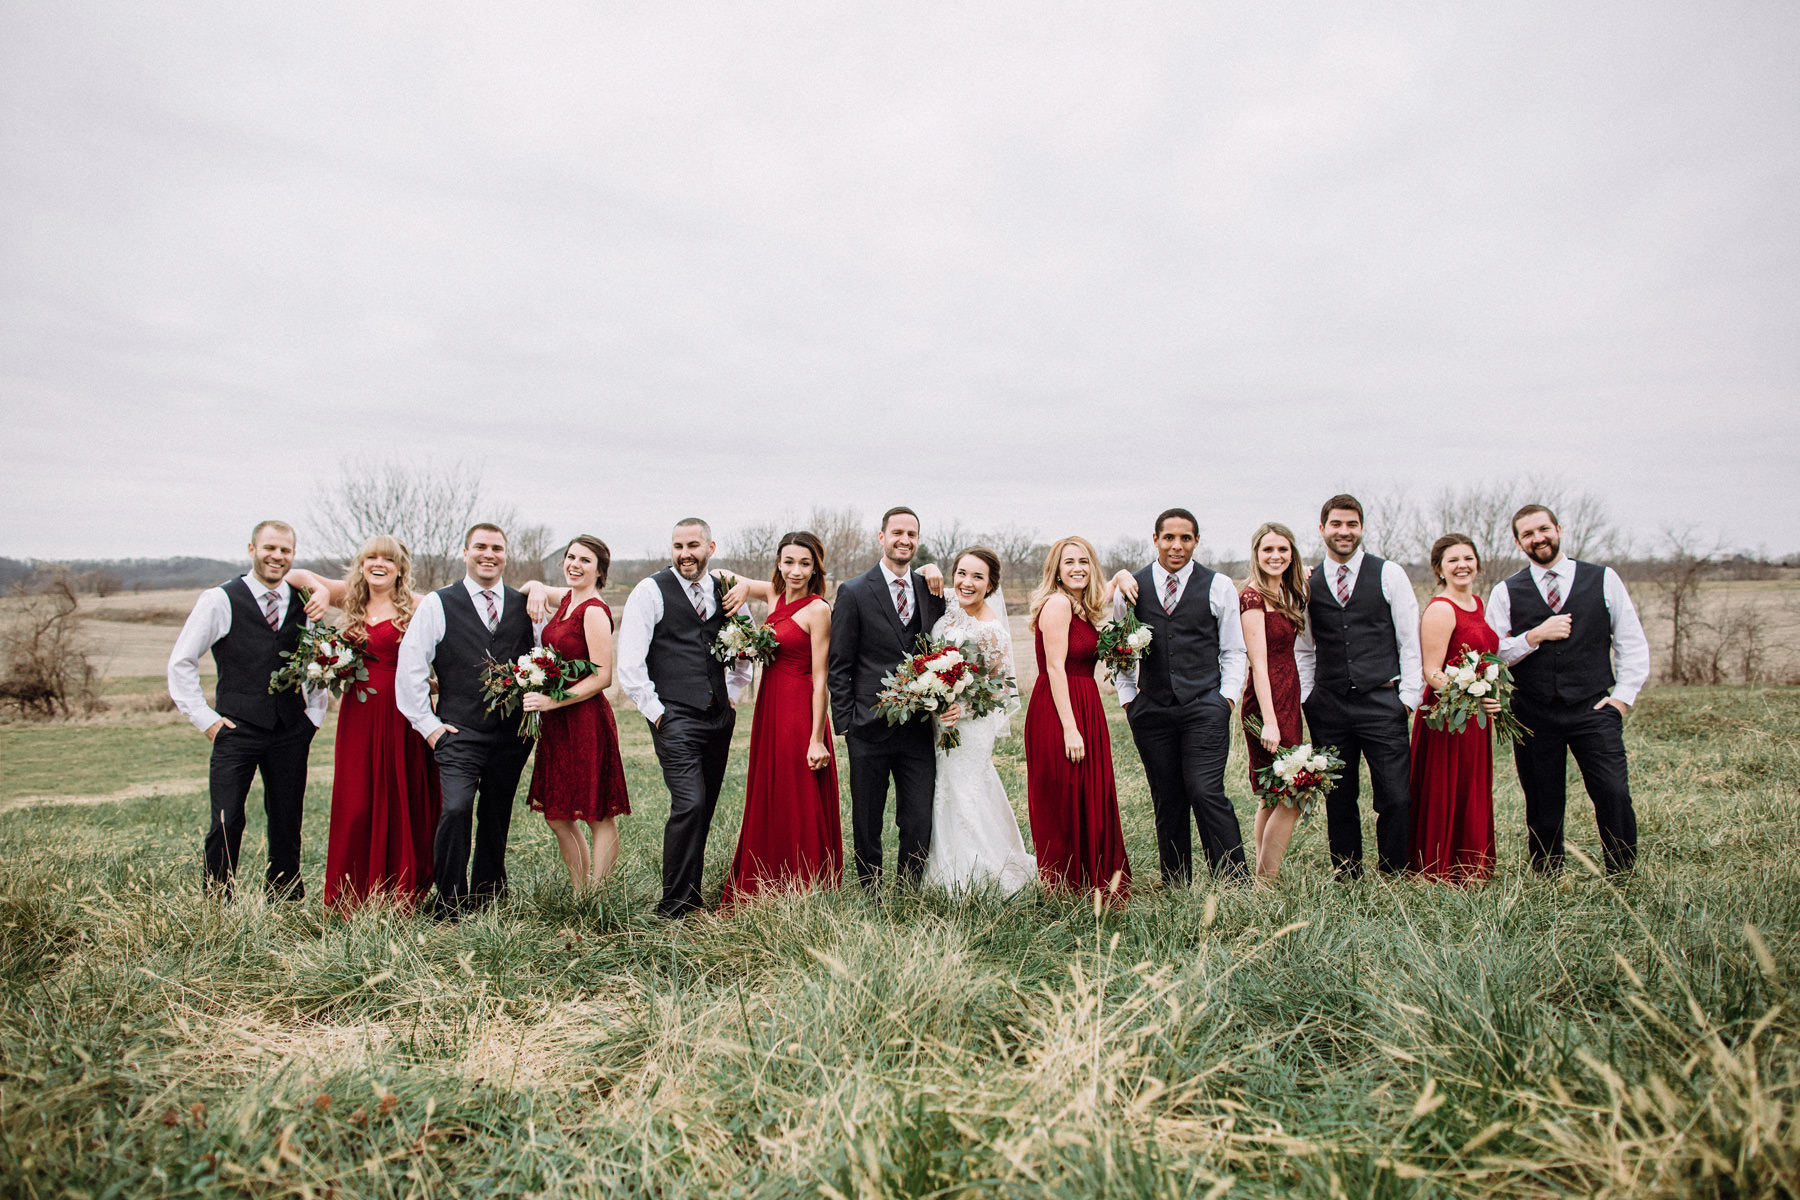 169_Weston Red Barn Farm Winter Wedding Kansas City, Missouri_Kindling Wedding Photography.JPG